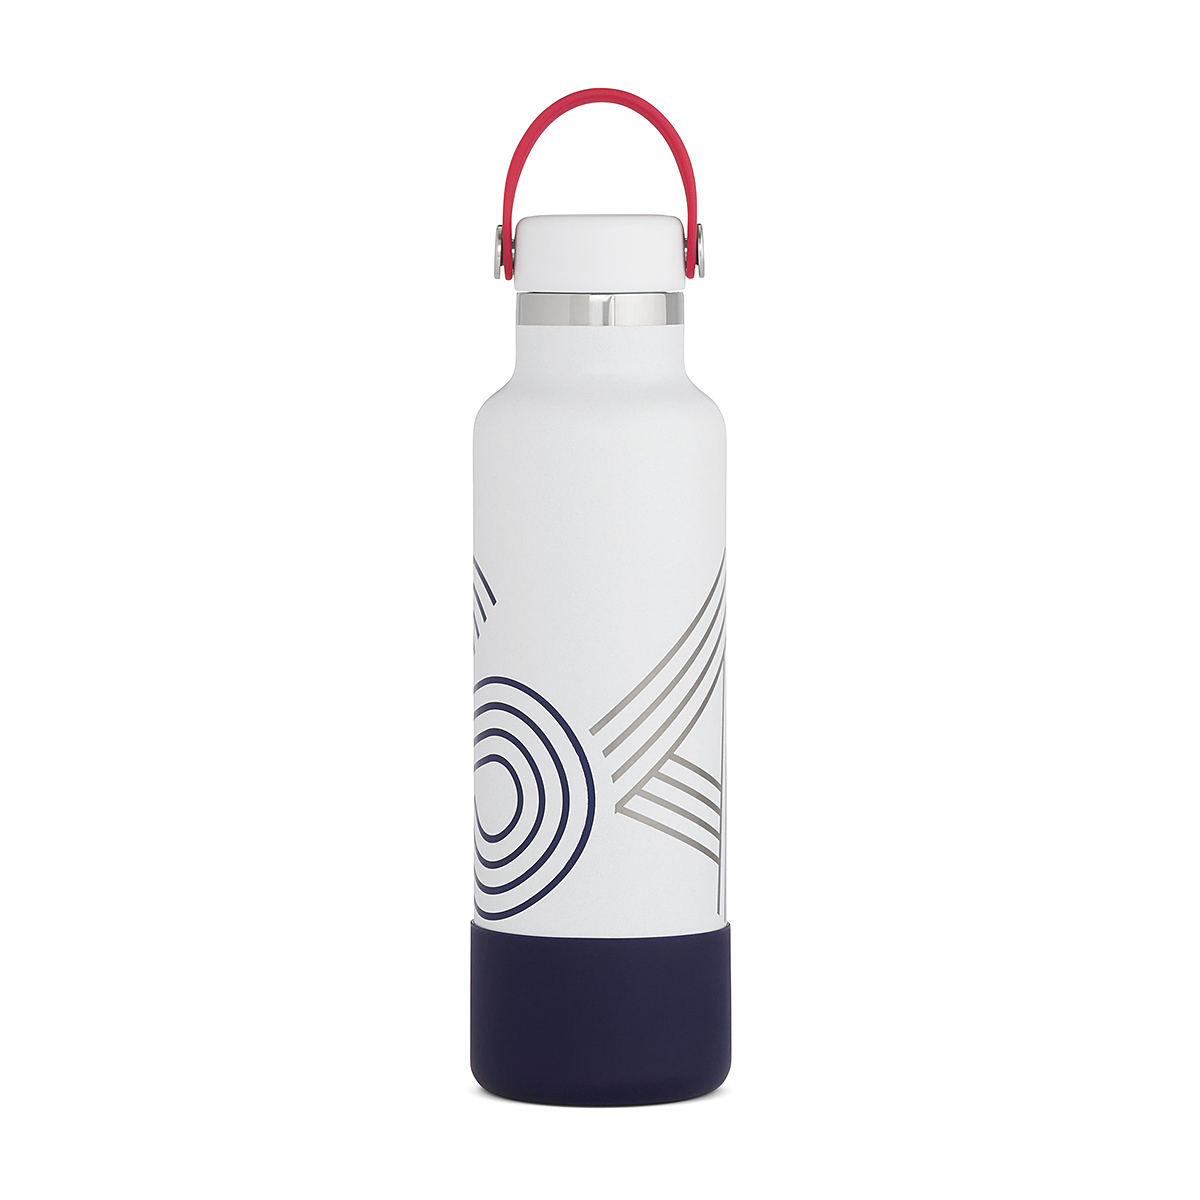 Hydro Flask 21 oz Standard Mouth USA Bottle - Color: Red/White/Blue, Red/White/Blue, large, image 2